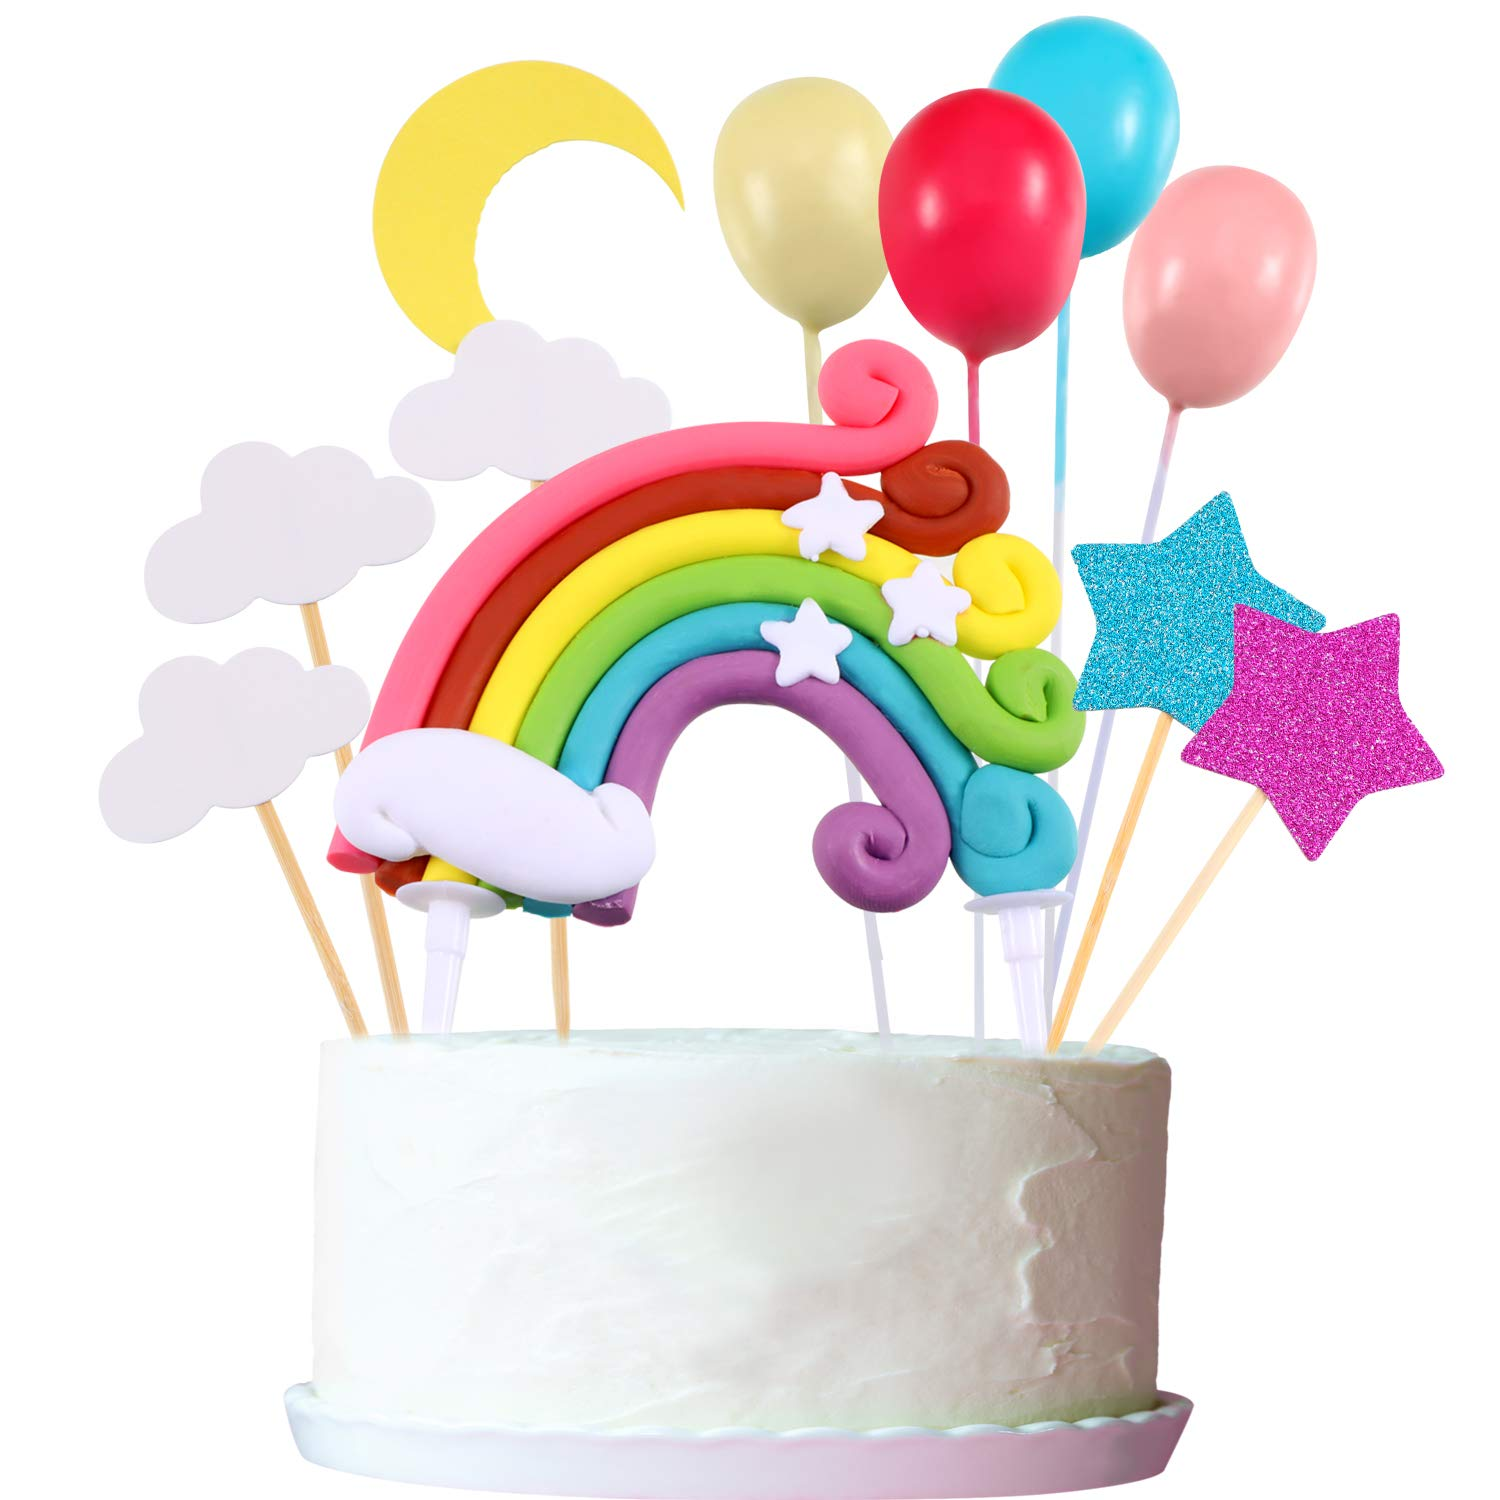 15 Pieces Cake Topper Set, Include Rainbow Cloud Moon Star Balloon Shape Cake Topper Cupcake Picks for Birthday Wedding Party Cake Decoration